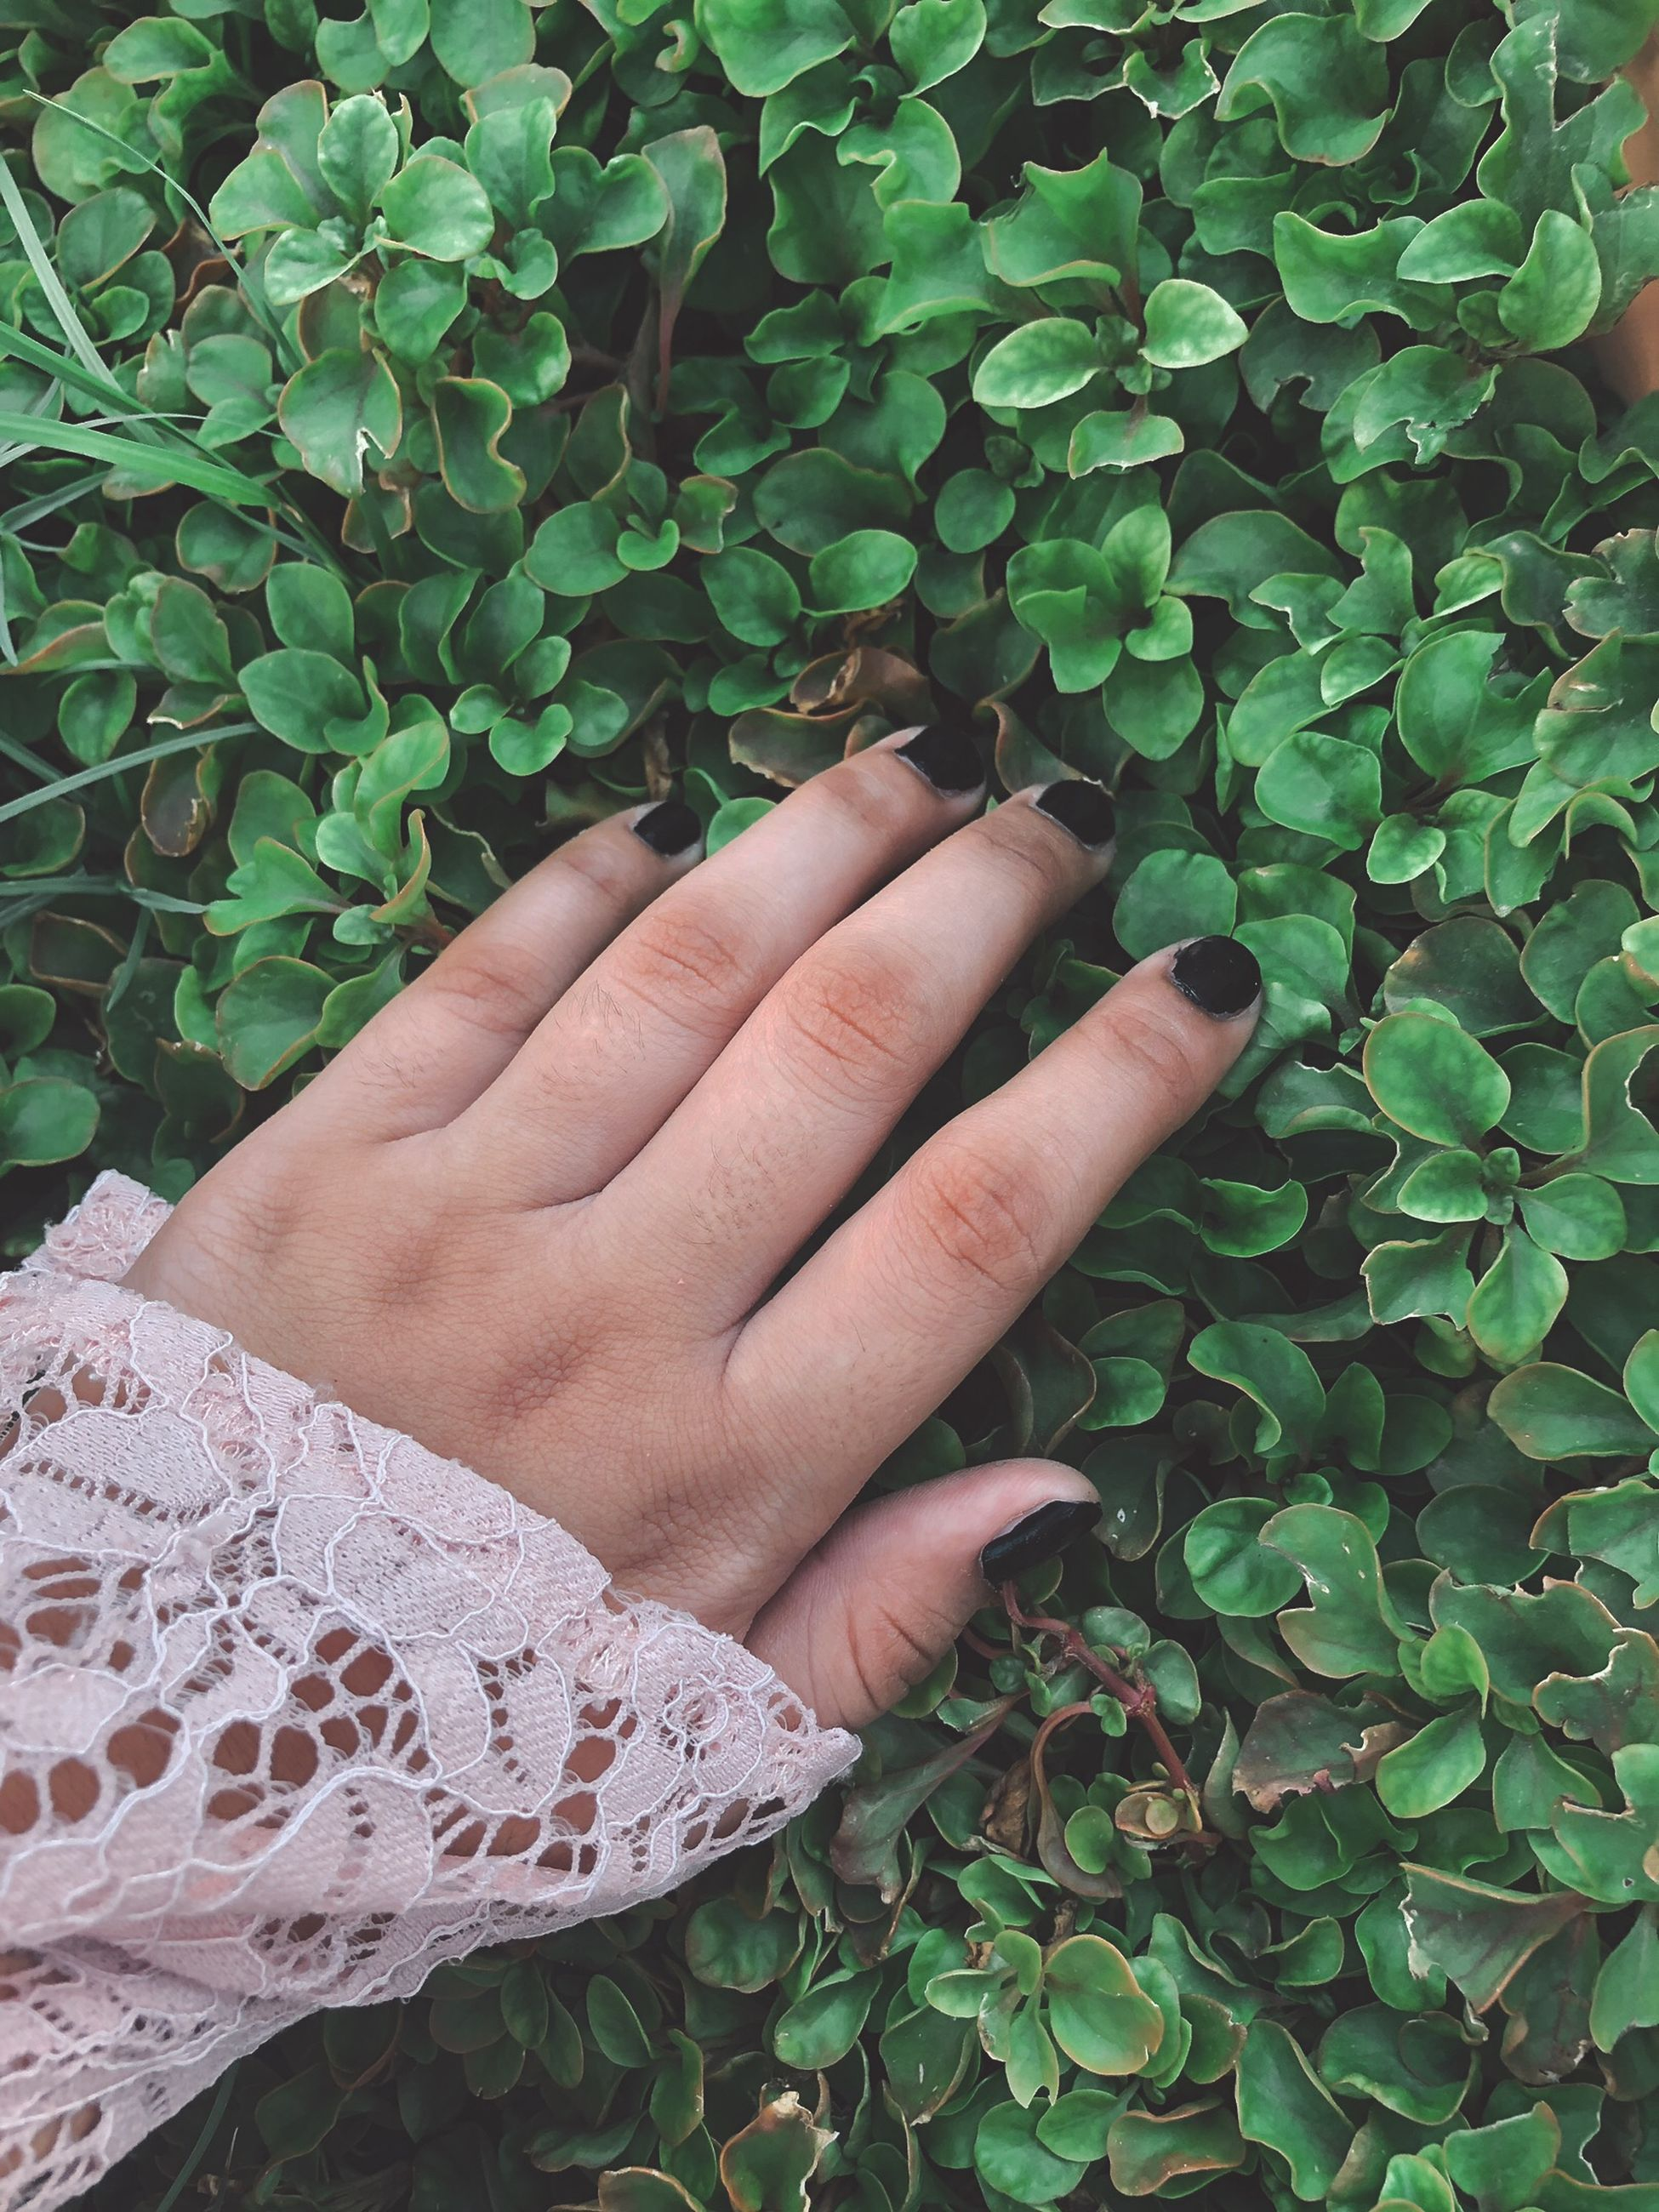 hand, leaf, human hand, plant part, human body part, green color, one person, real people, plant, finger, human finger, growth, body part, nature, unrecognizable person, day, lifestyles, close-up, touching, outdoors, clover, leaves, human limb